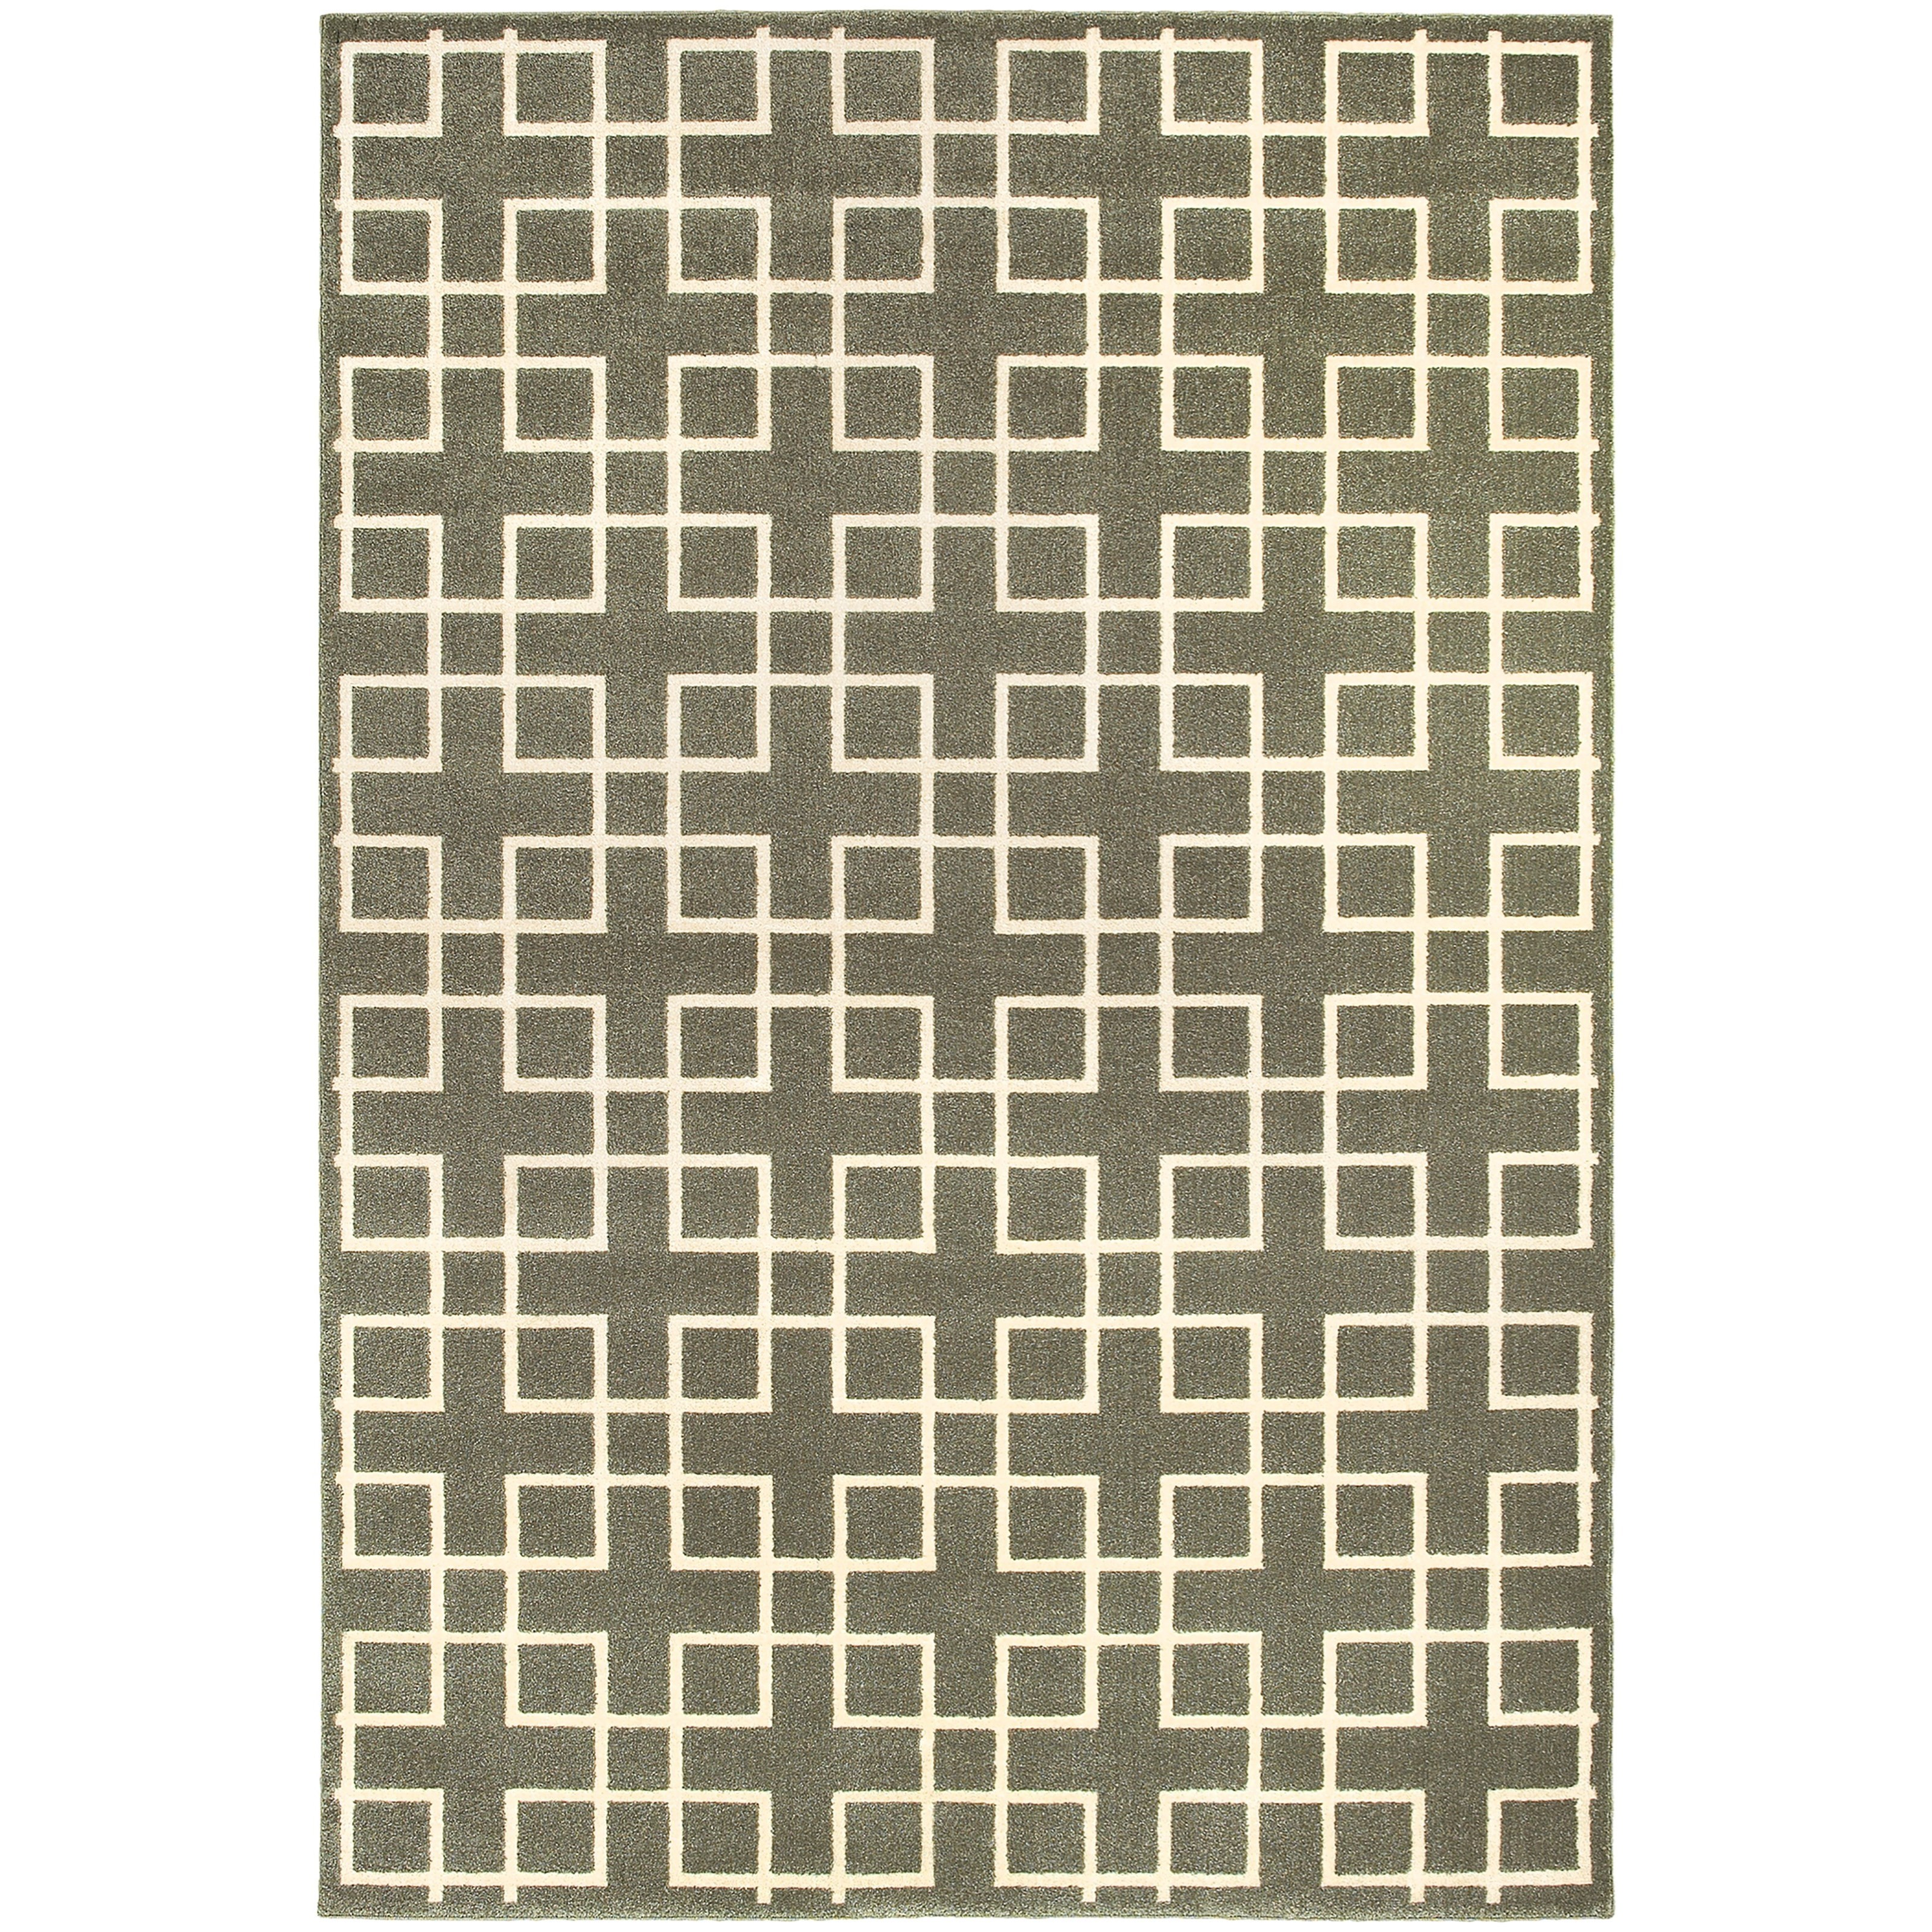 "Ellerson 7'10"" X 10'10"" Rectangle Area Rug by Oriental Weavers at Godby Home Furnishings"